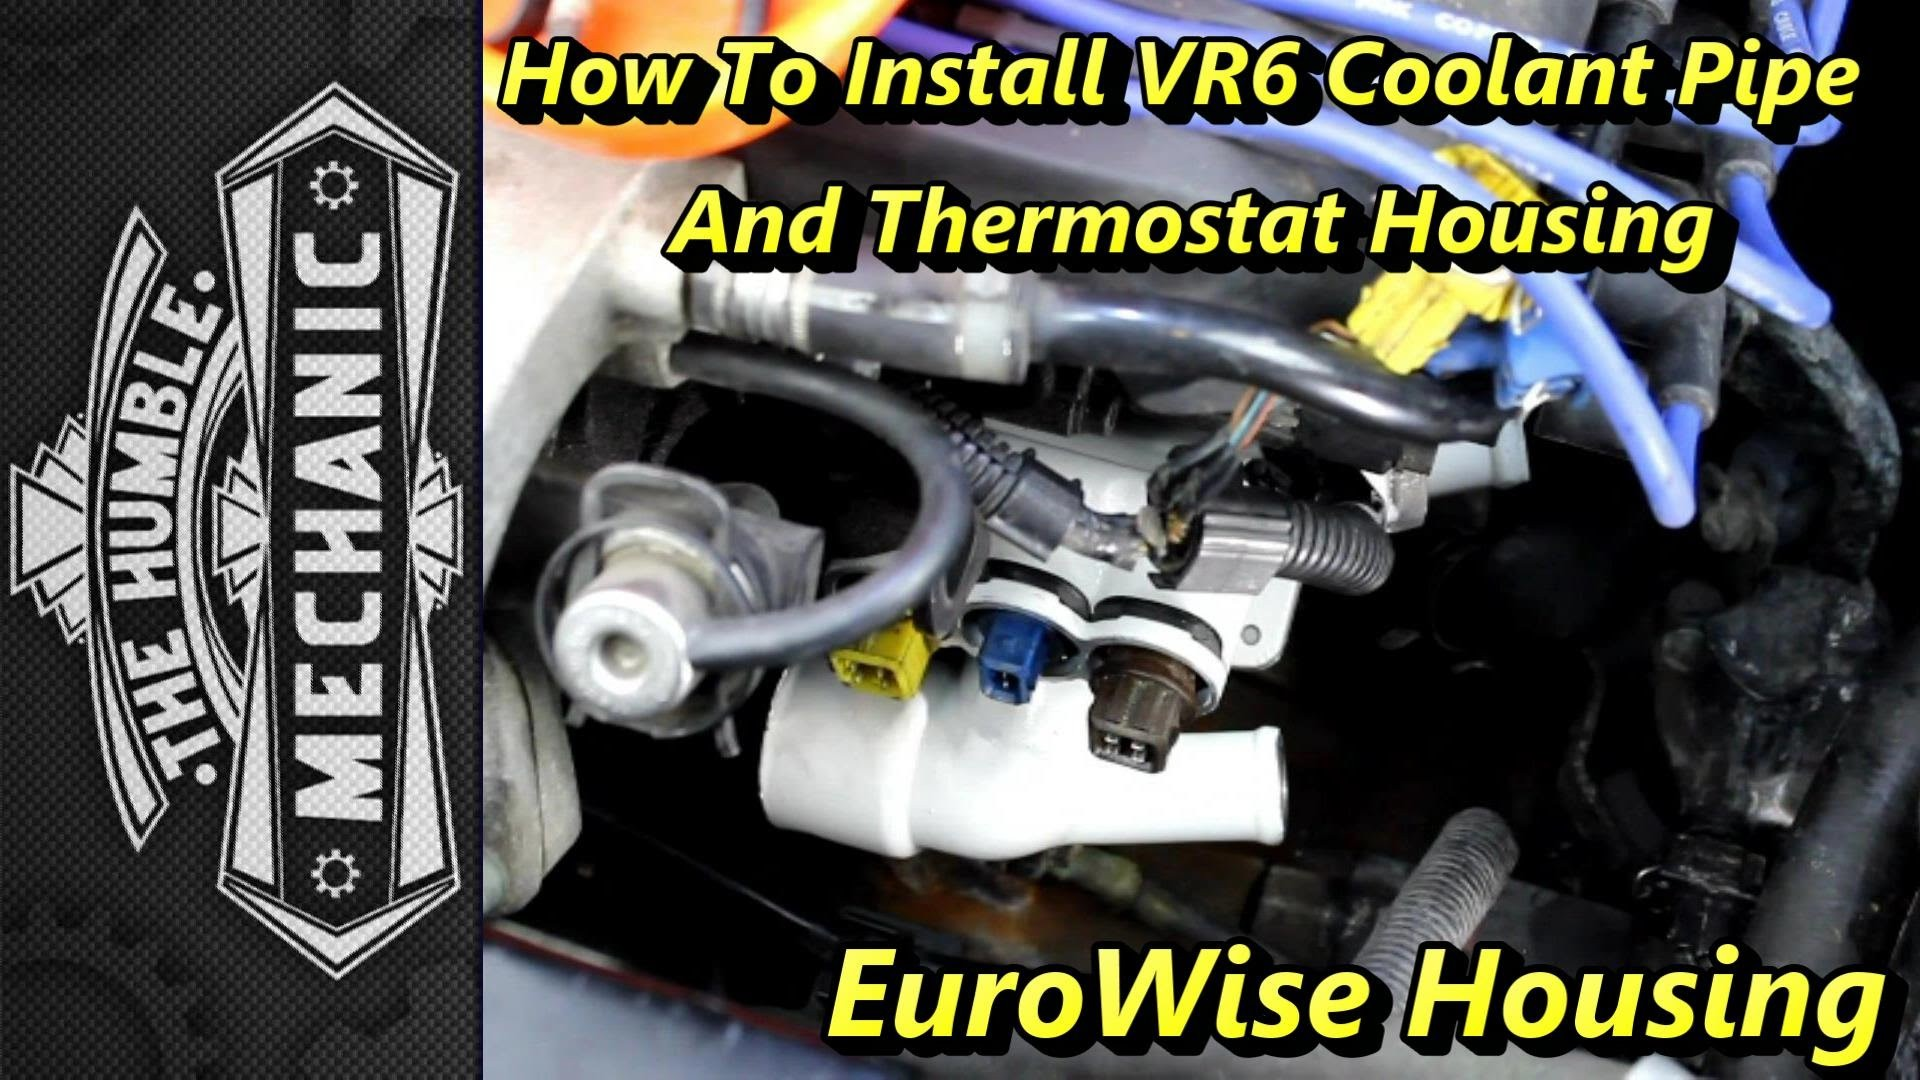 2000 Jetta Vr6 Engine Diagram thermostat Replacement with Upgraded thermostat Housing Of 2000 Jetta Vr6 Engine Diagram